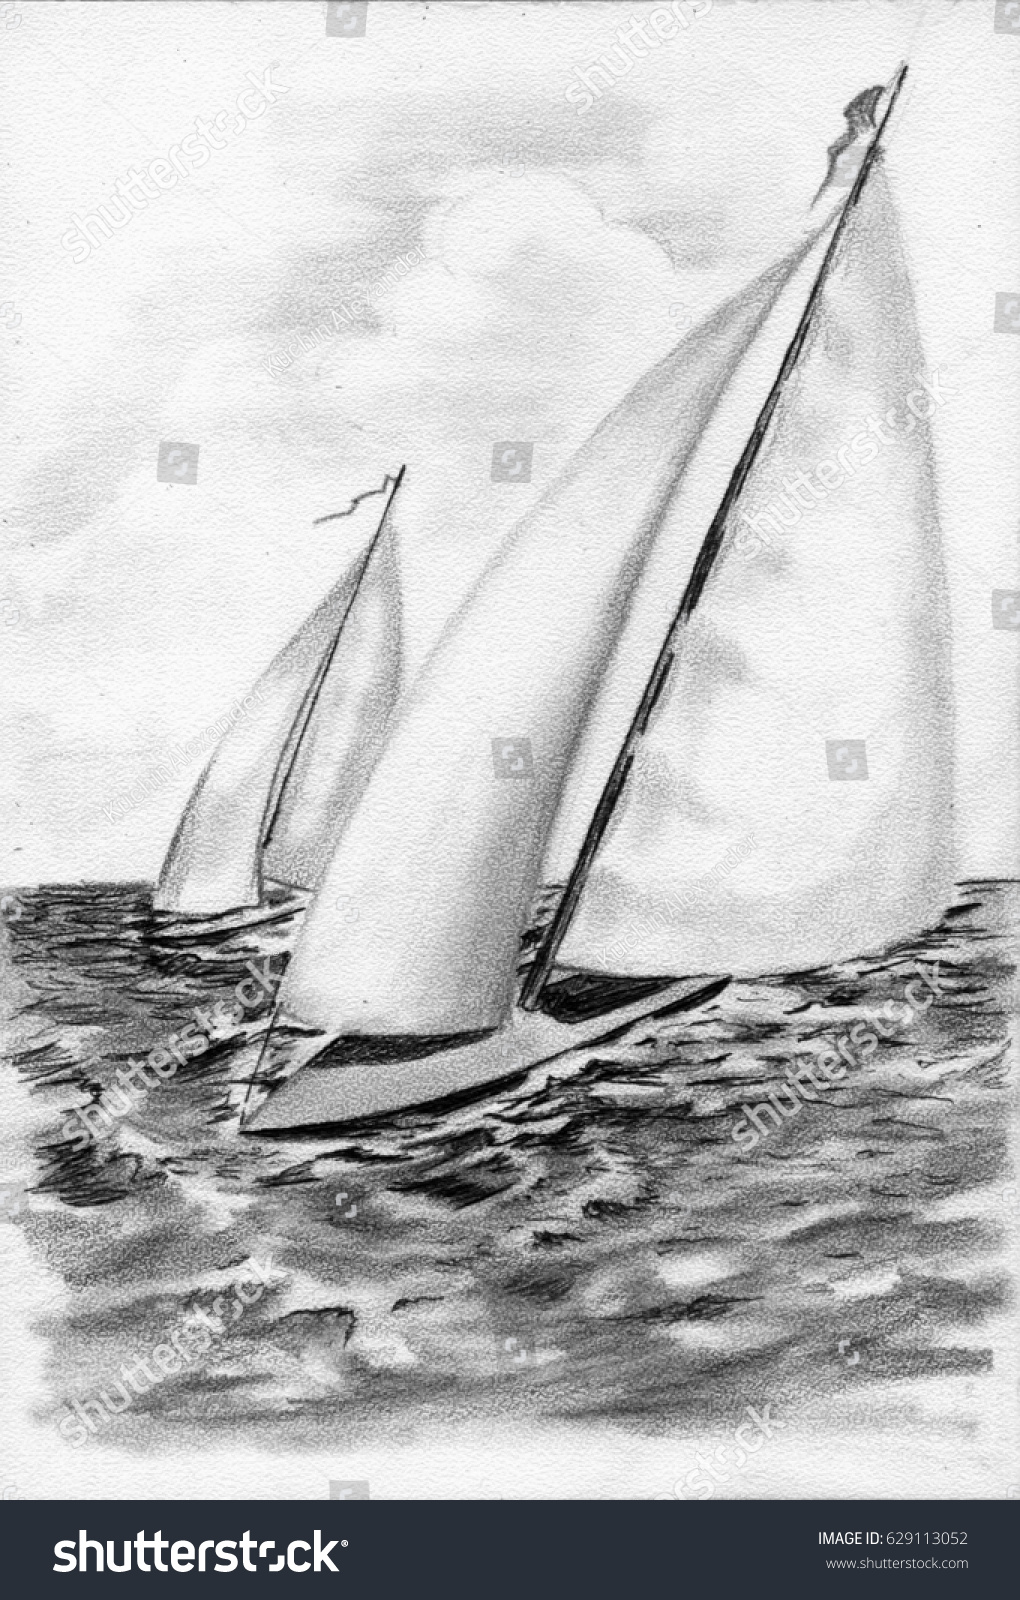 Sailing boats on sea pencil drawing black and white background